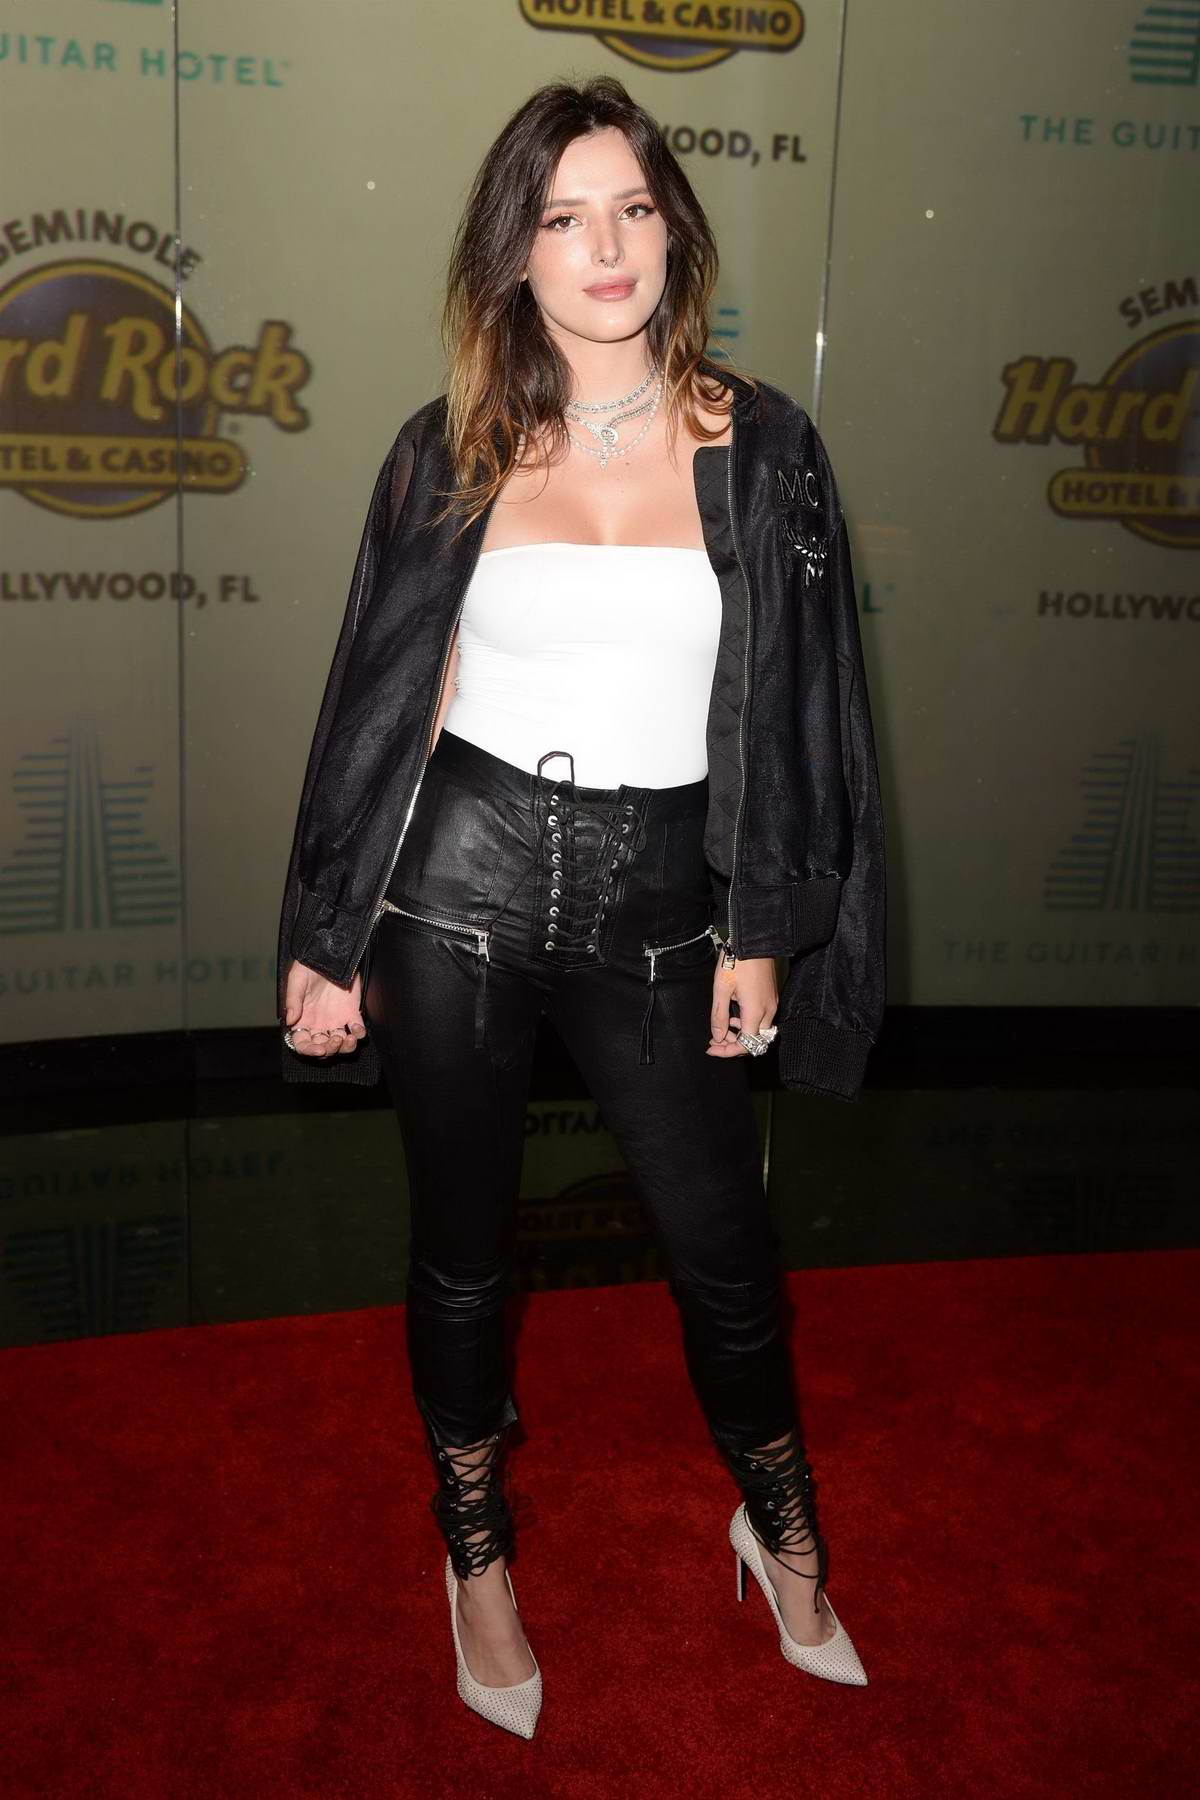 Bella Thorne attends the grand opening of the Guitar Hotel in Hollywood, Florida